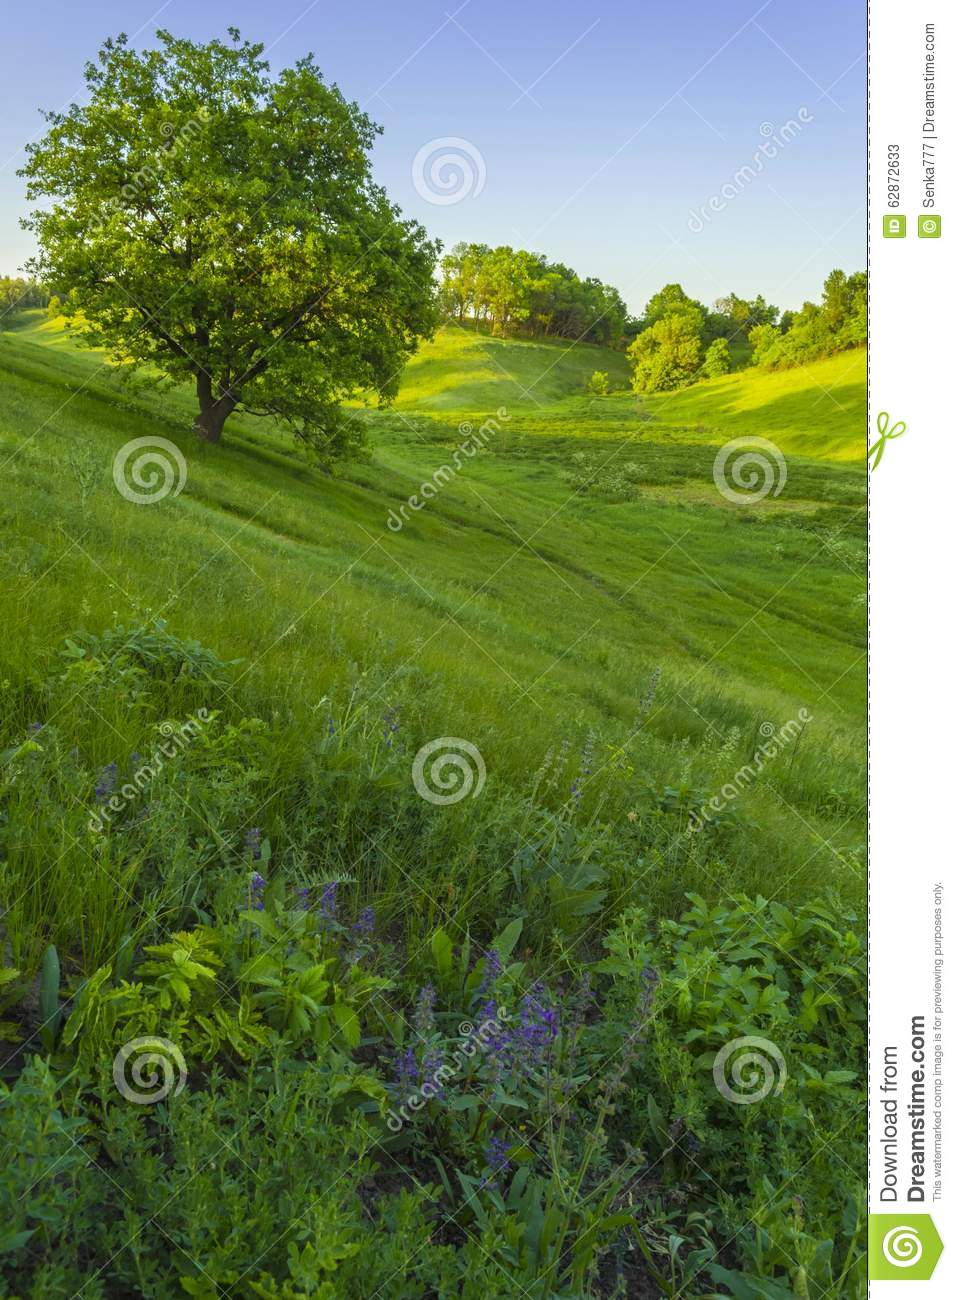 Spring Landscape With Green Grass, Trees And Blue Sky ...